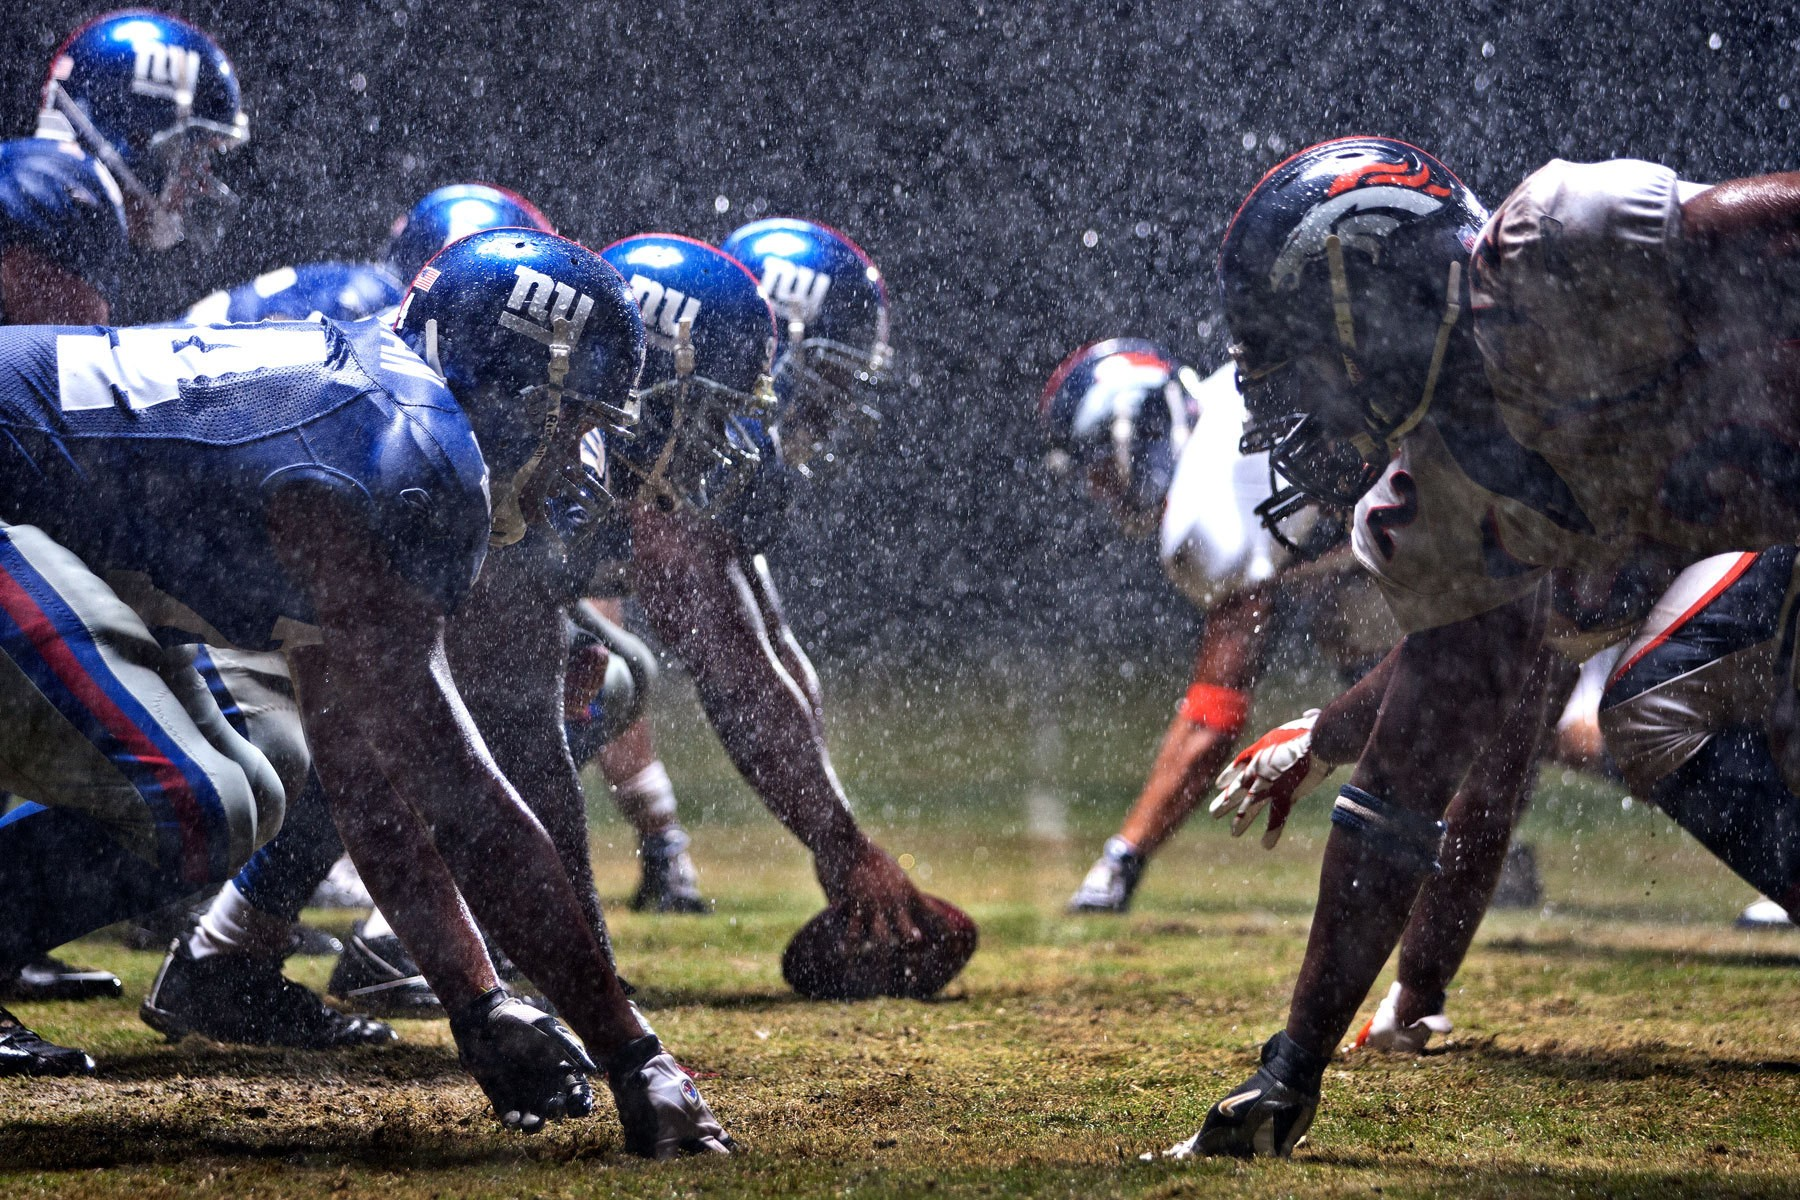 1giants_broncos_rain